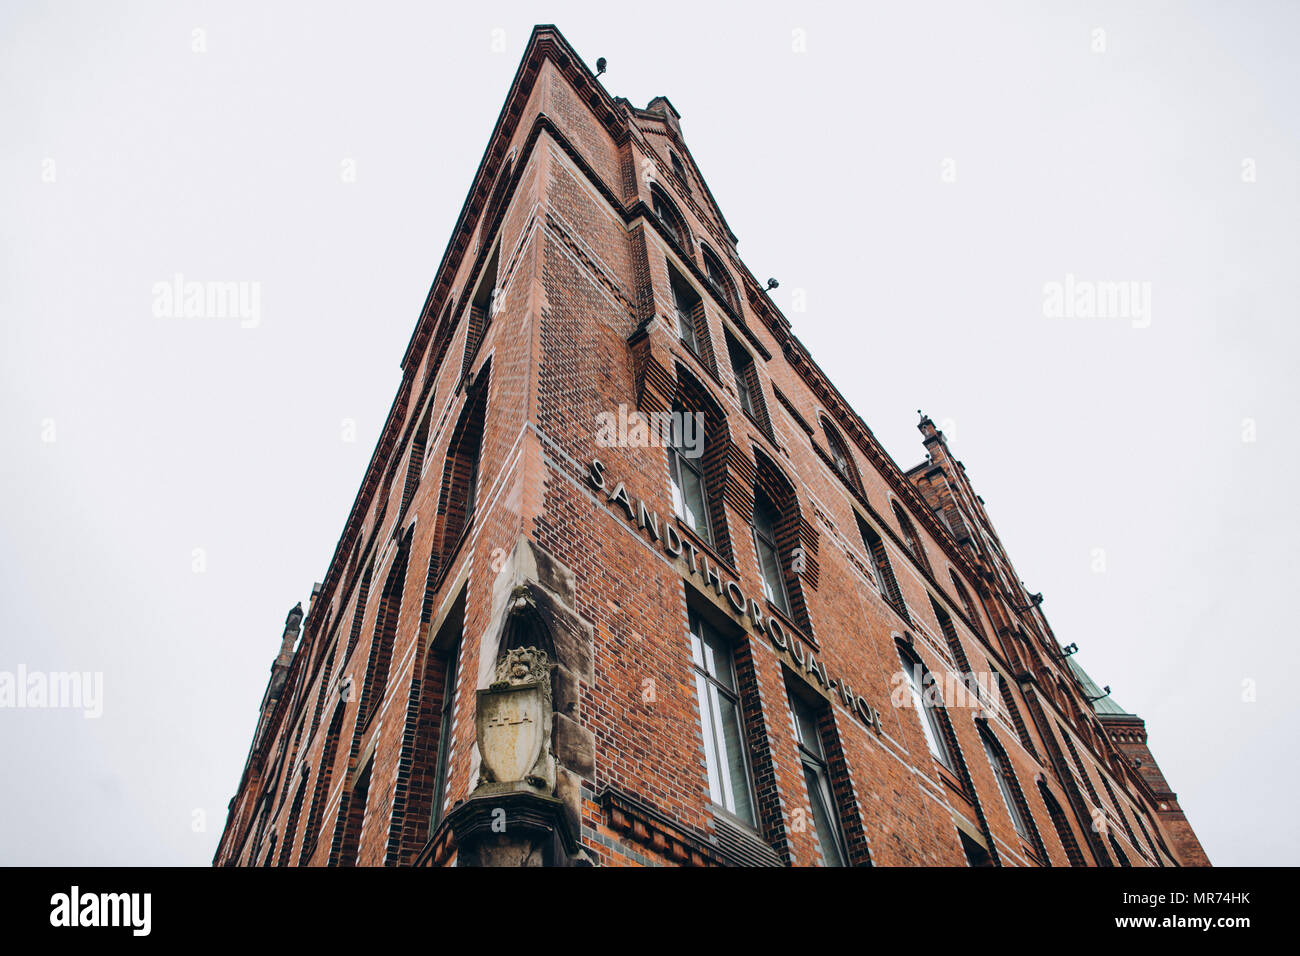 HAMBURG, GERMANY - SEP 4, 2016: low angle view of Sandthorquaihof in the Speicherstadt district, Hamburg, Germany, Europe Stock Photo